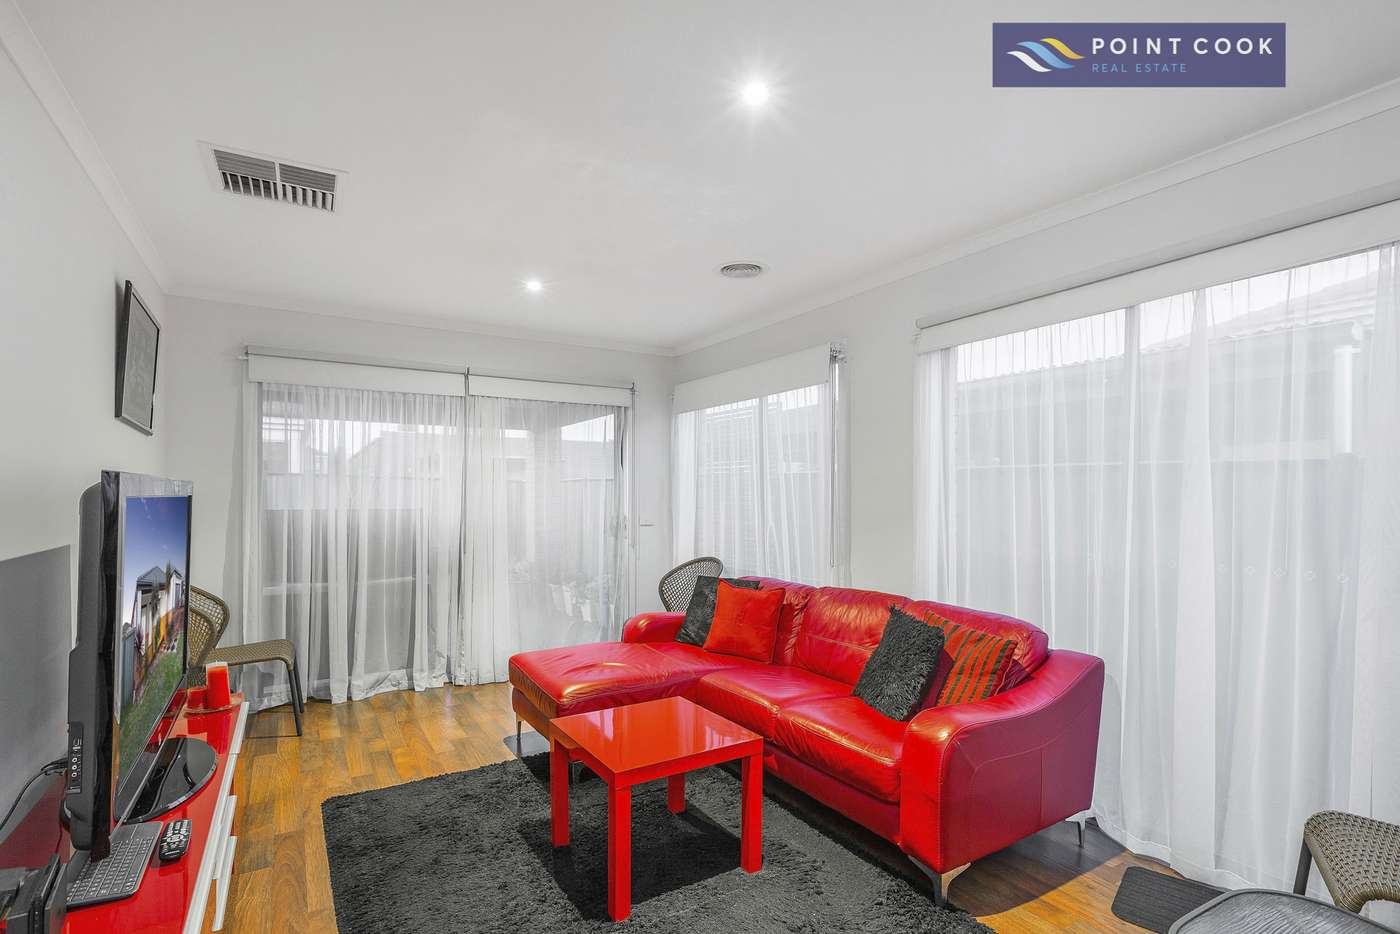 Fifth view of Homely house listing, 24 Caldicott Crescent, Point Cook VIC 3030